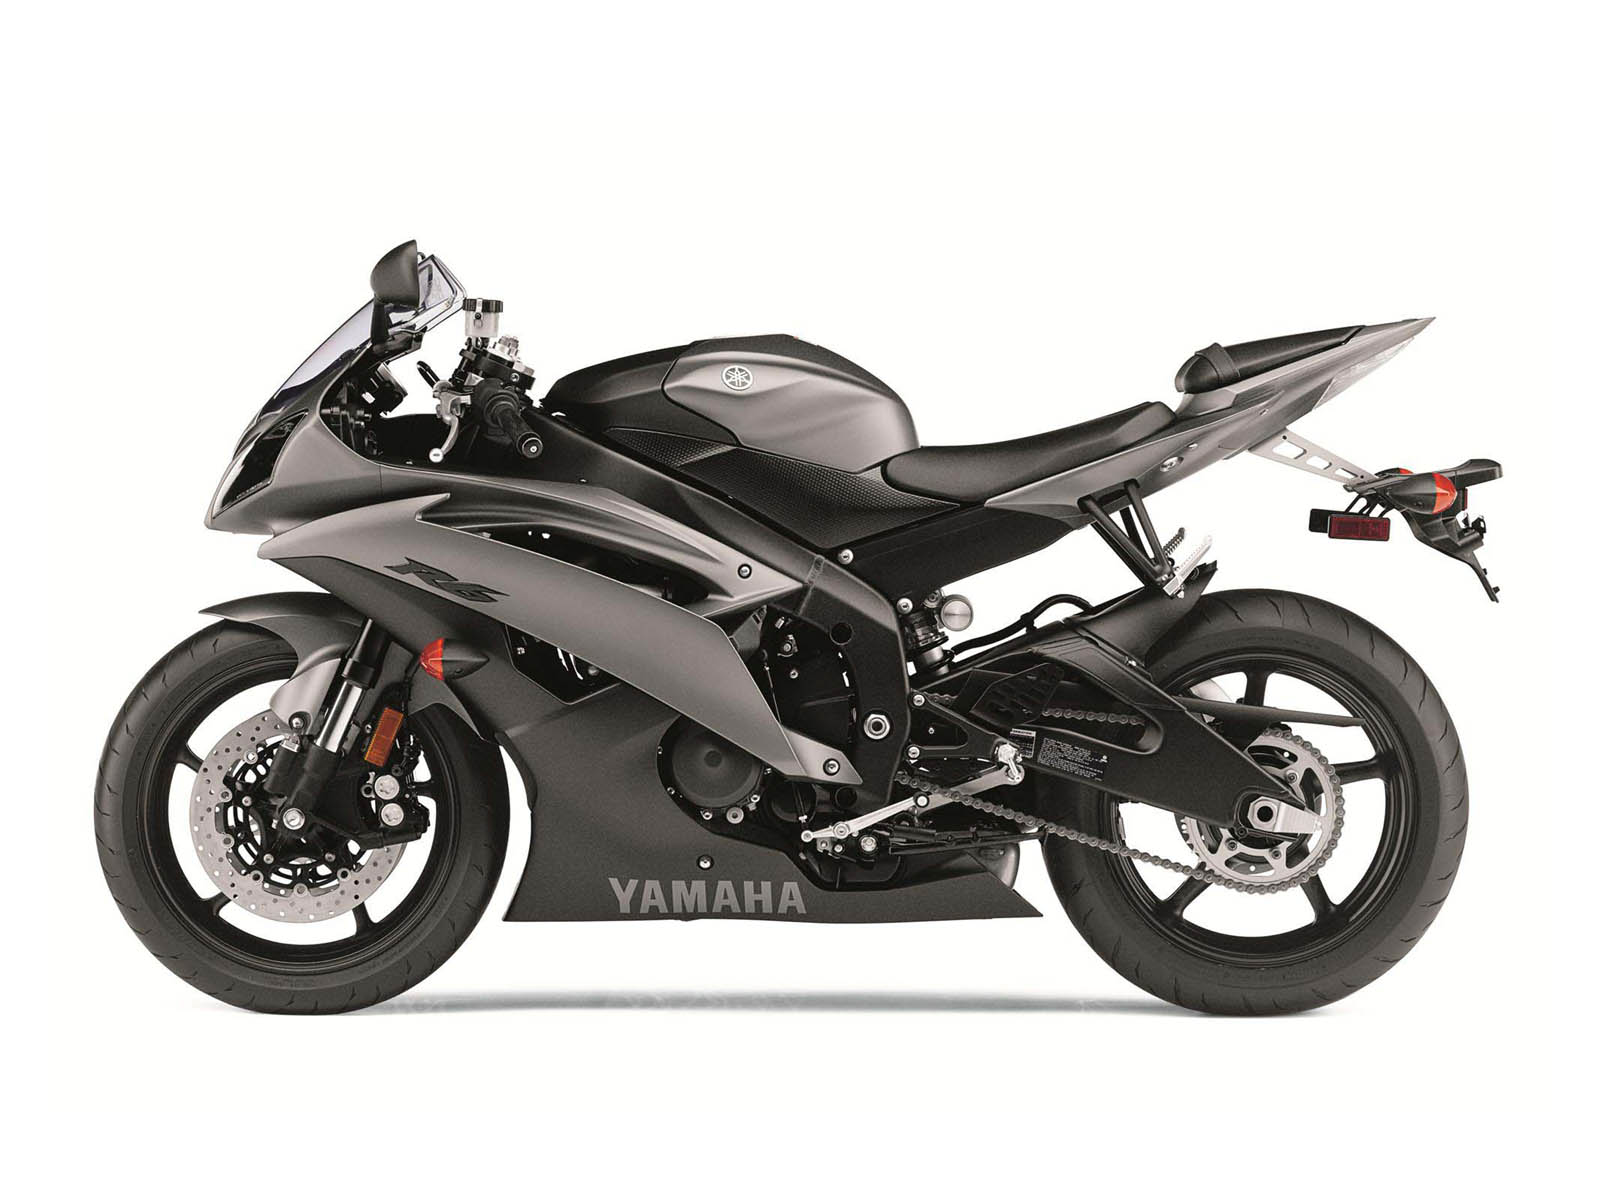 r6 bike wallpapers yamaha yzf r6 bike desktop wallpapers yamaha yzf r6 1600x1200